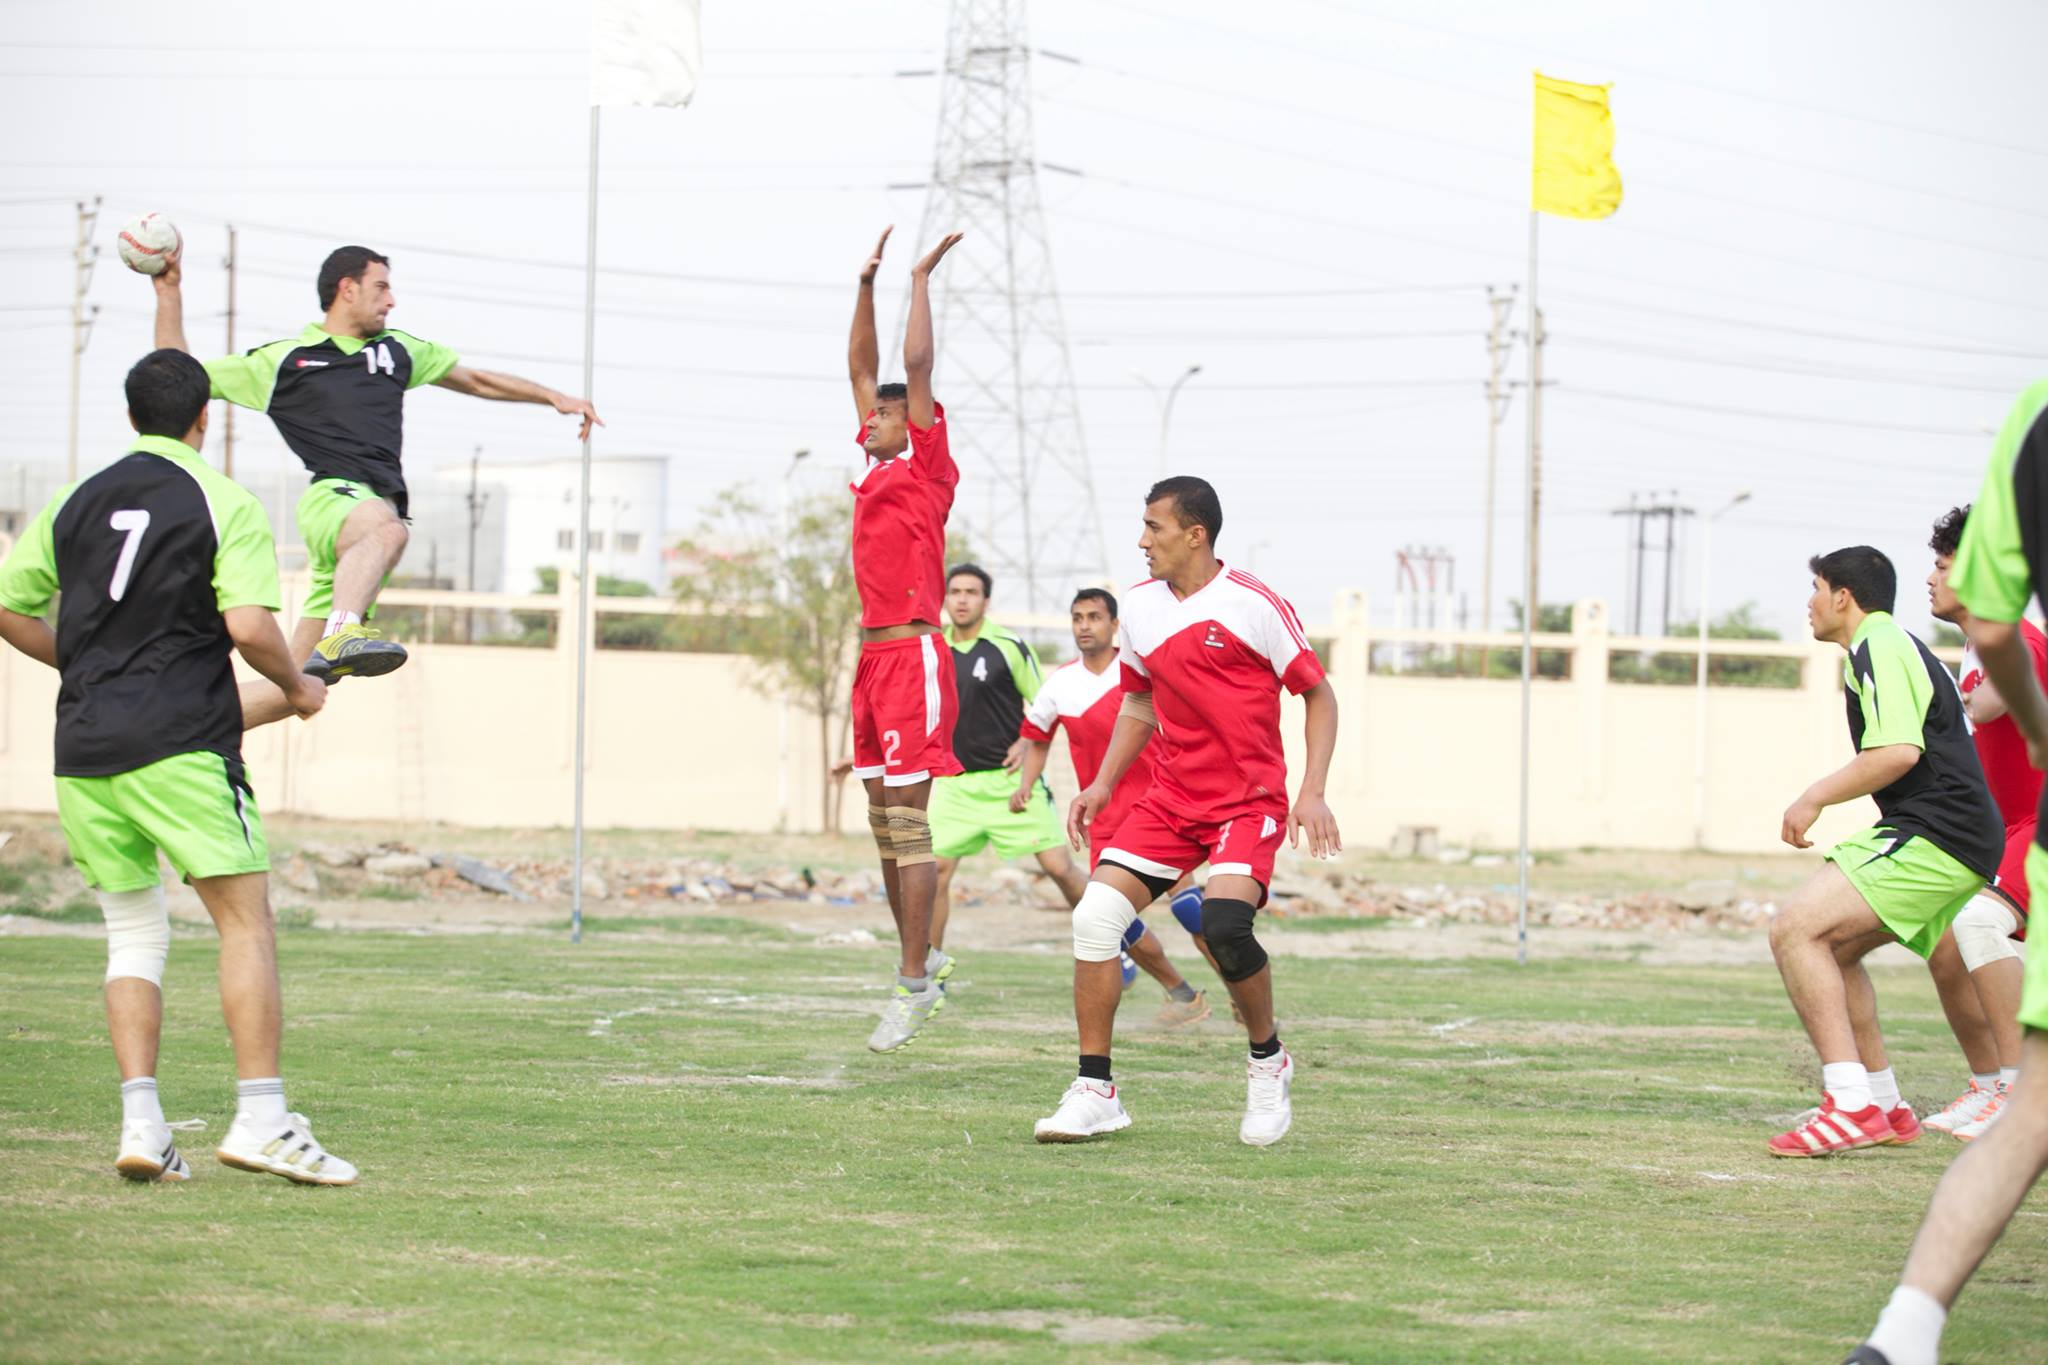 Action from the 3rd South Asian Men's Handball Championship